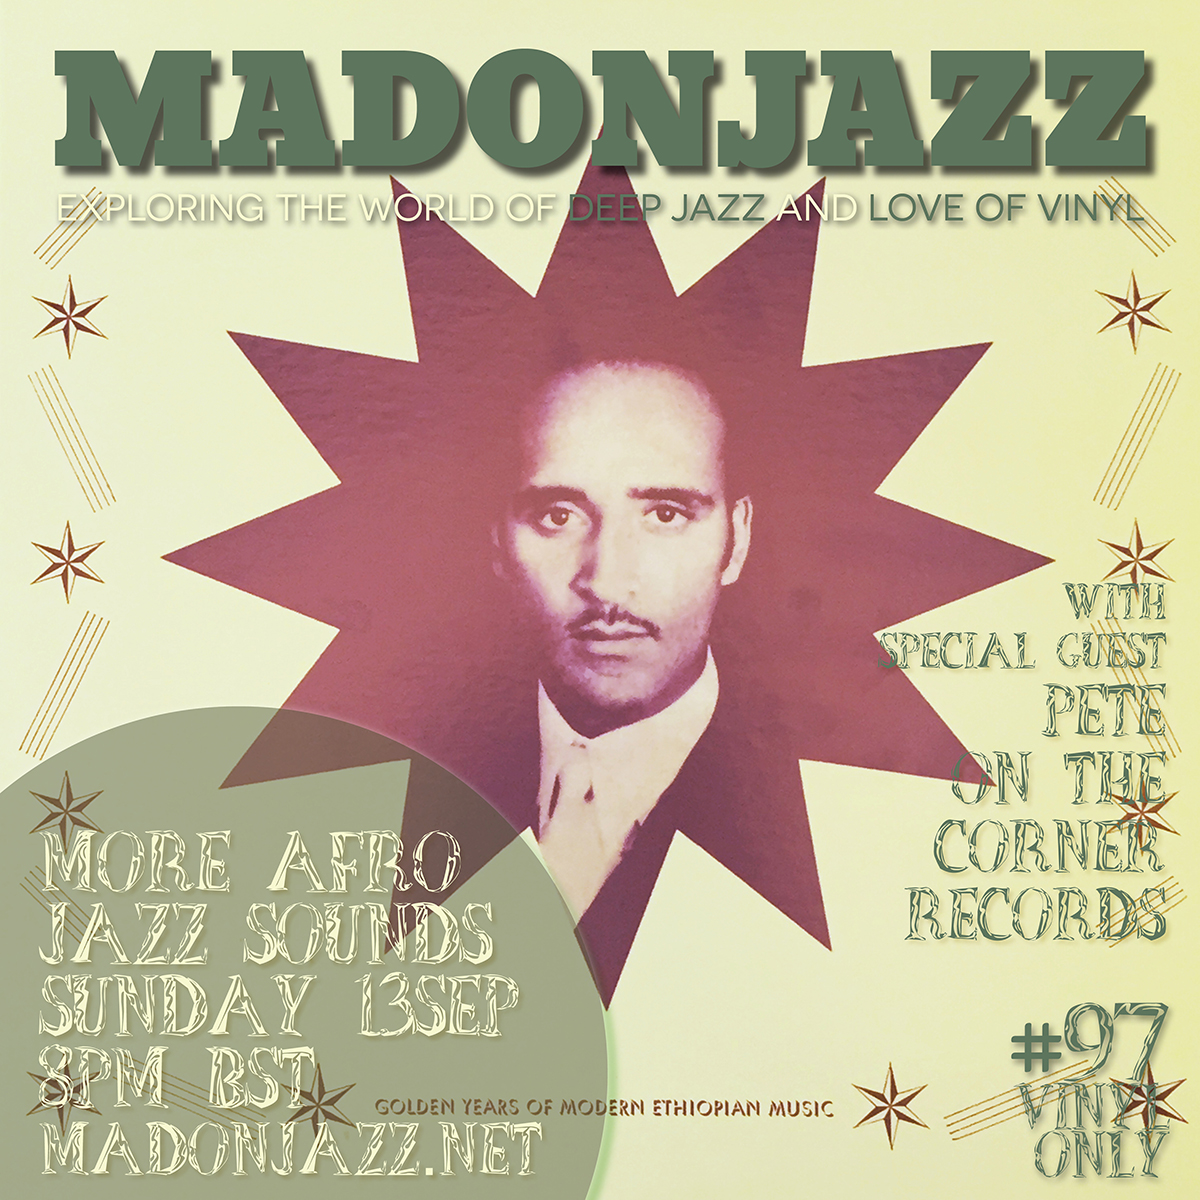 MADONJAZZ #97 – More AfroJazz Sounds w/ Pete On the Corner